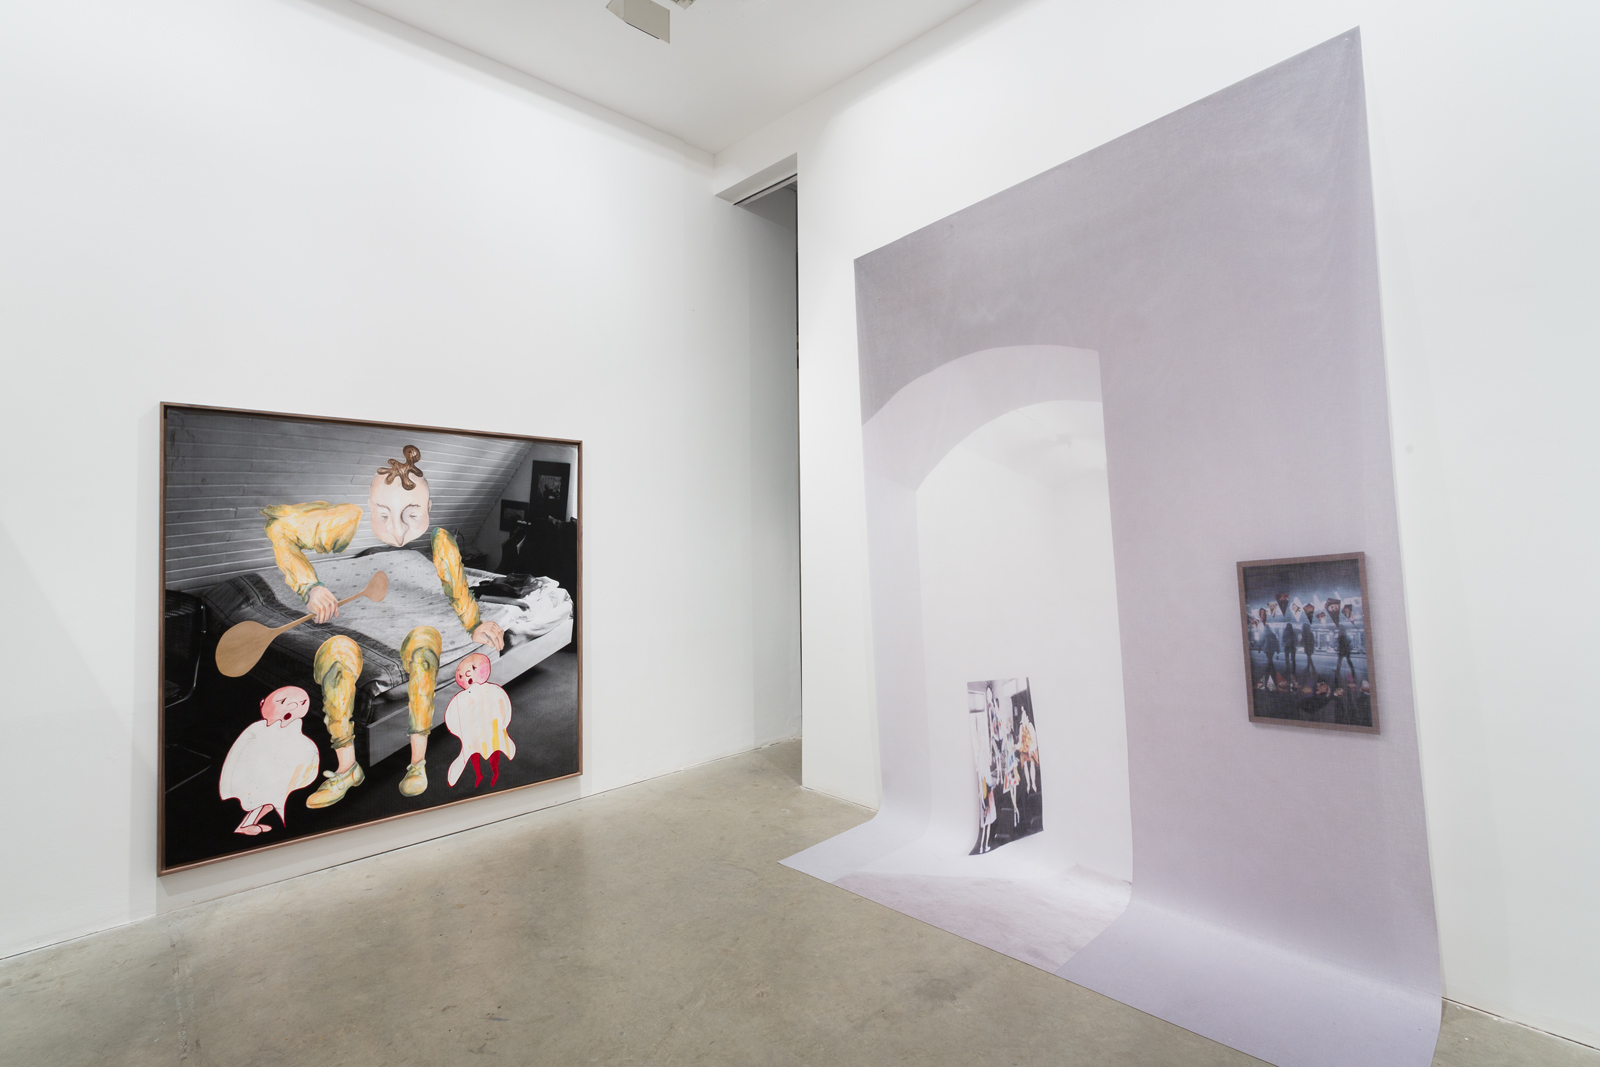 Two Parks, 2014, Vilma Gold, London, Installation View. Two Parks , Philipp Timischl and Anne Speier